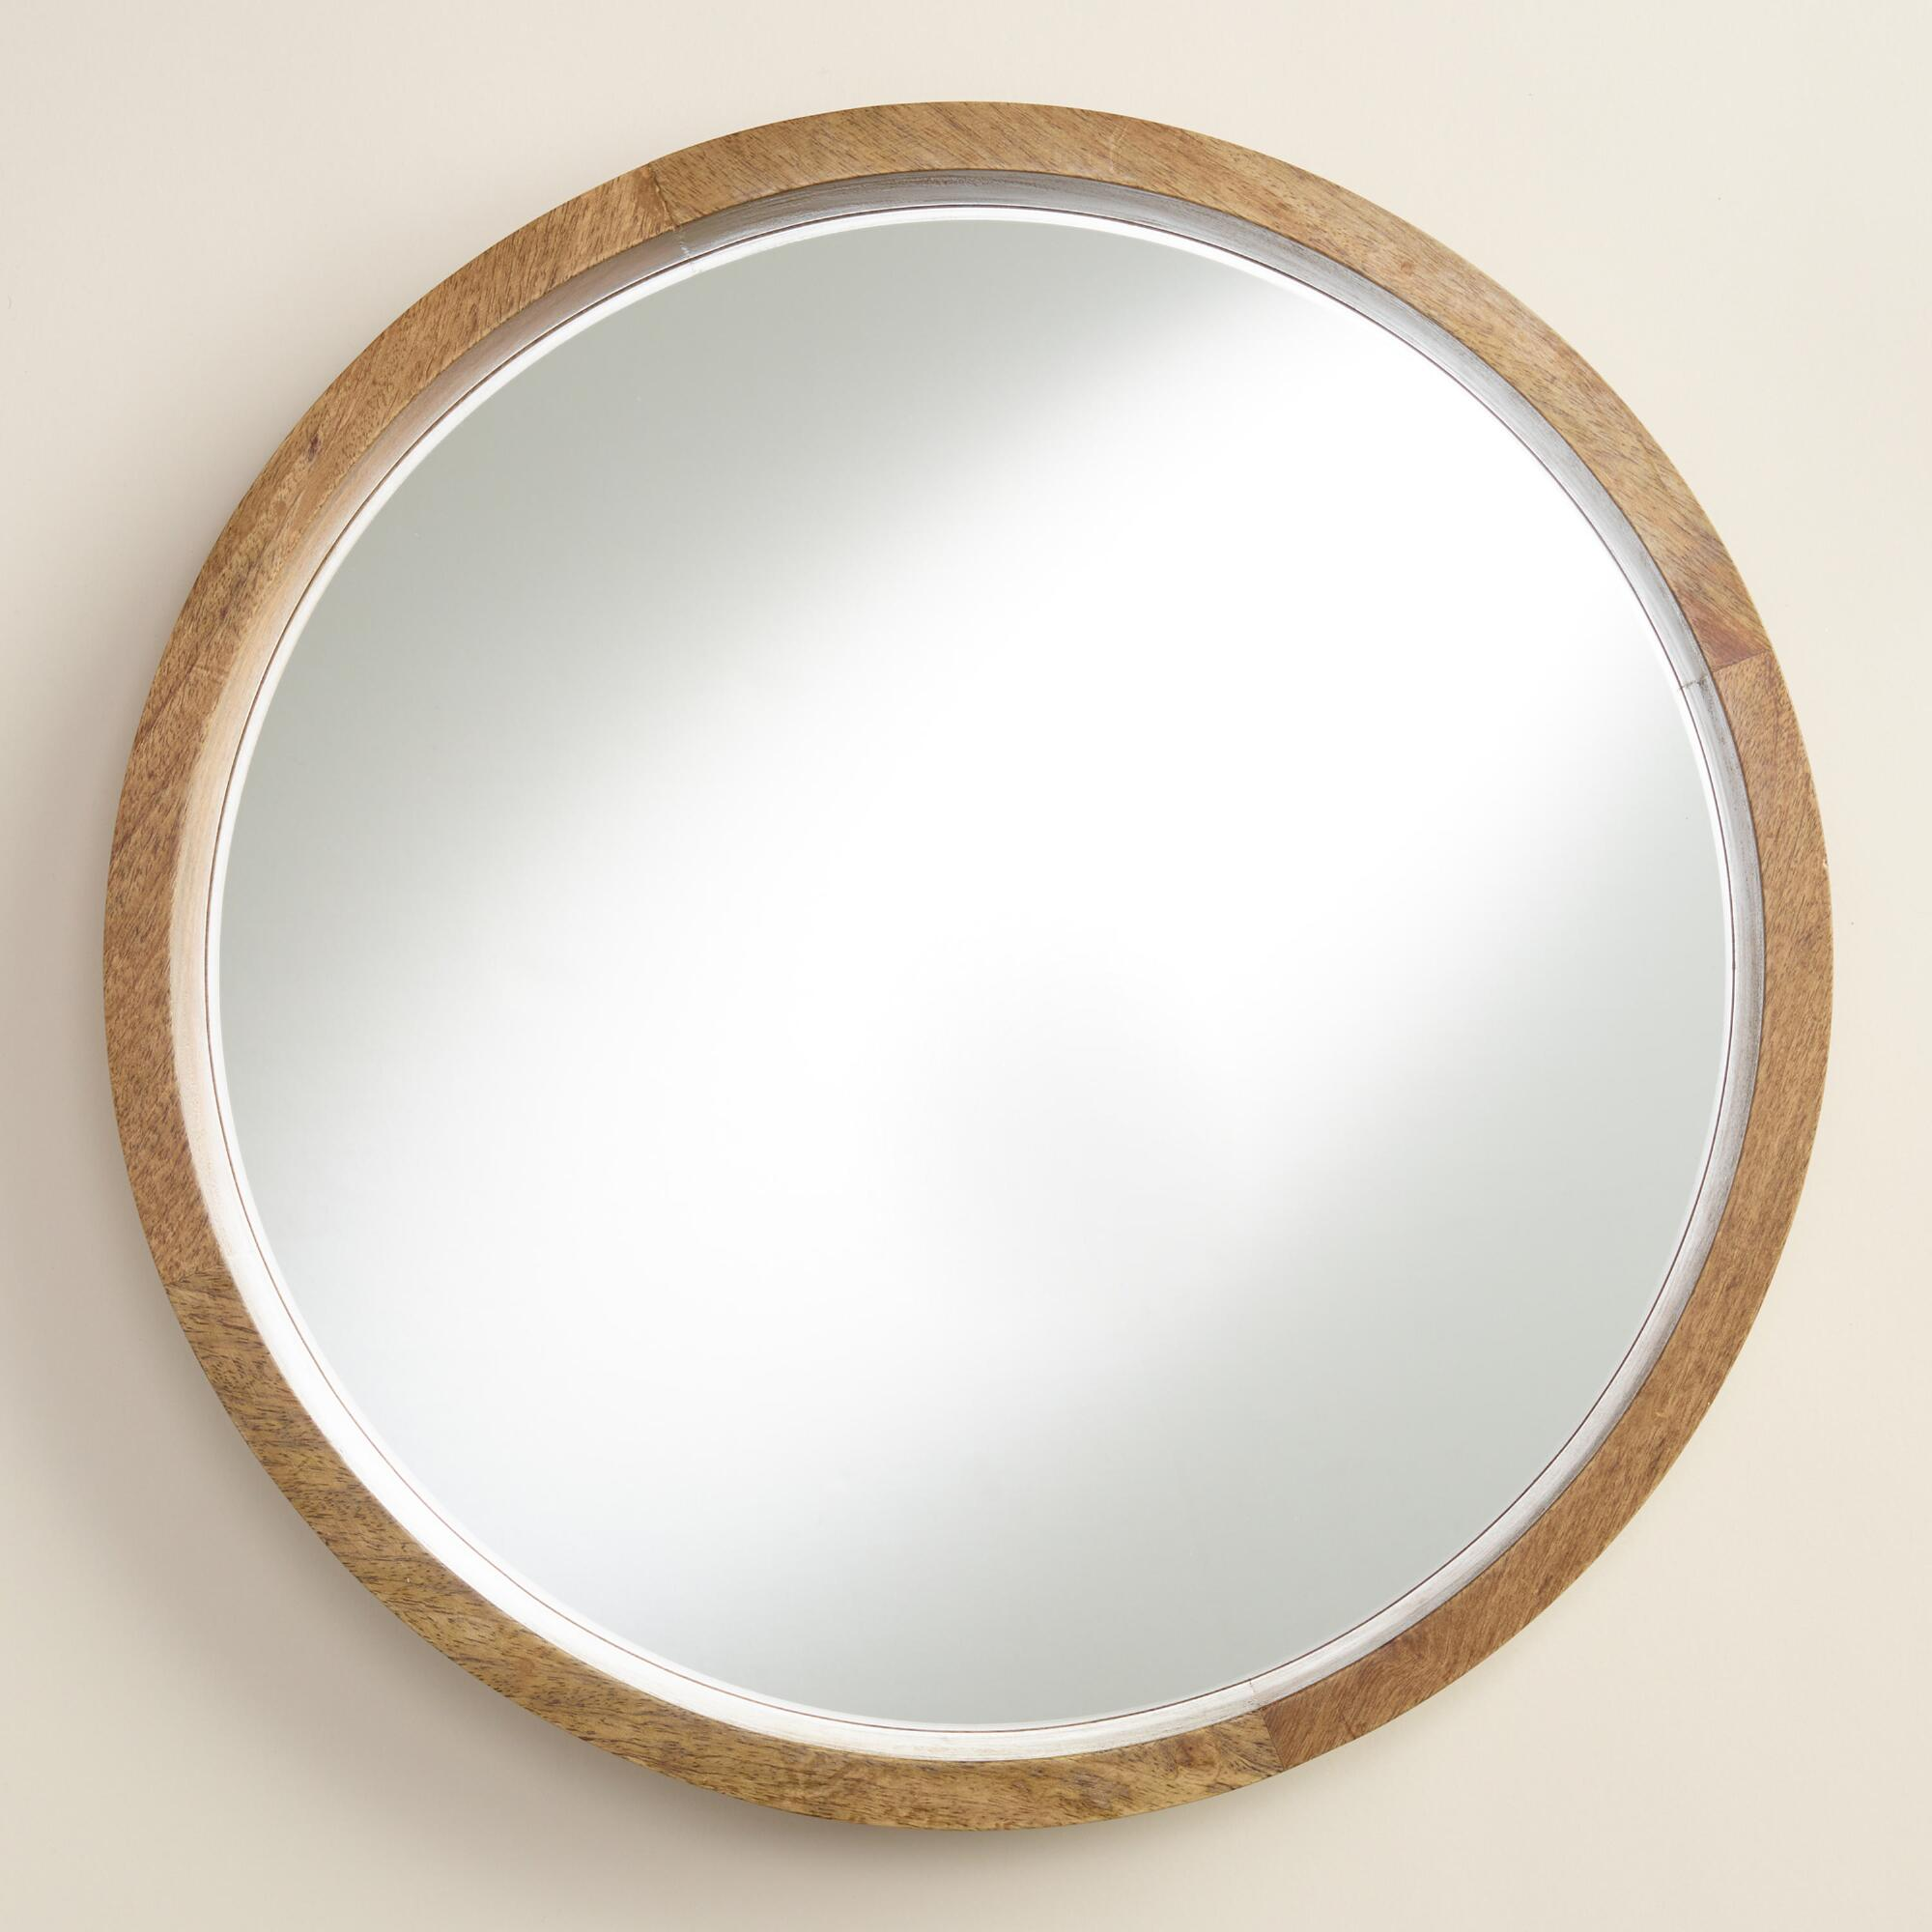 Natural wood round evan mirror world market for Circle mirror